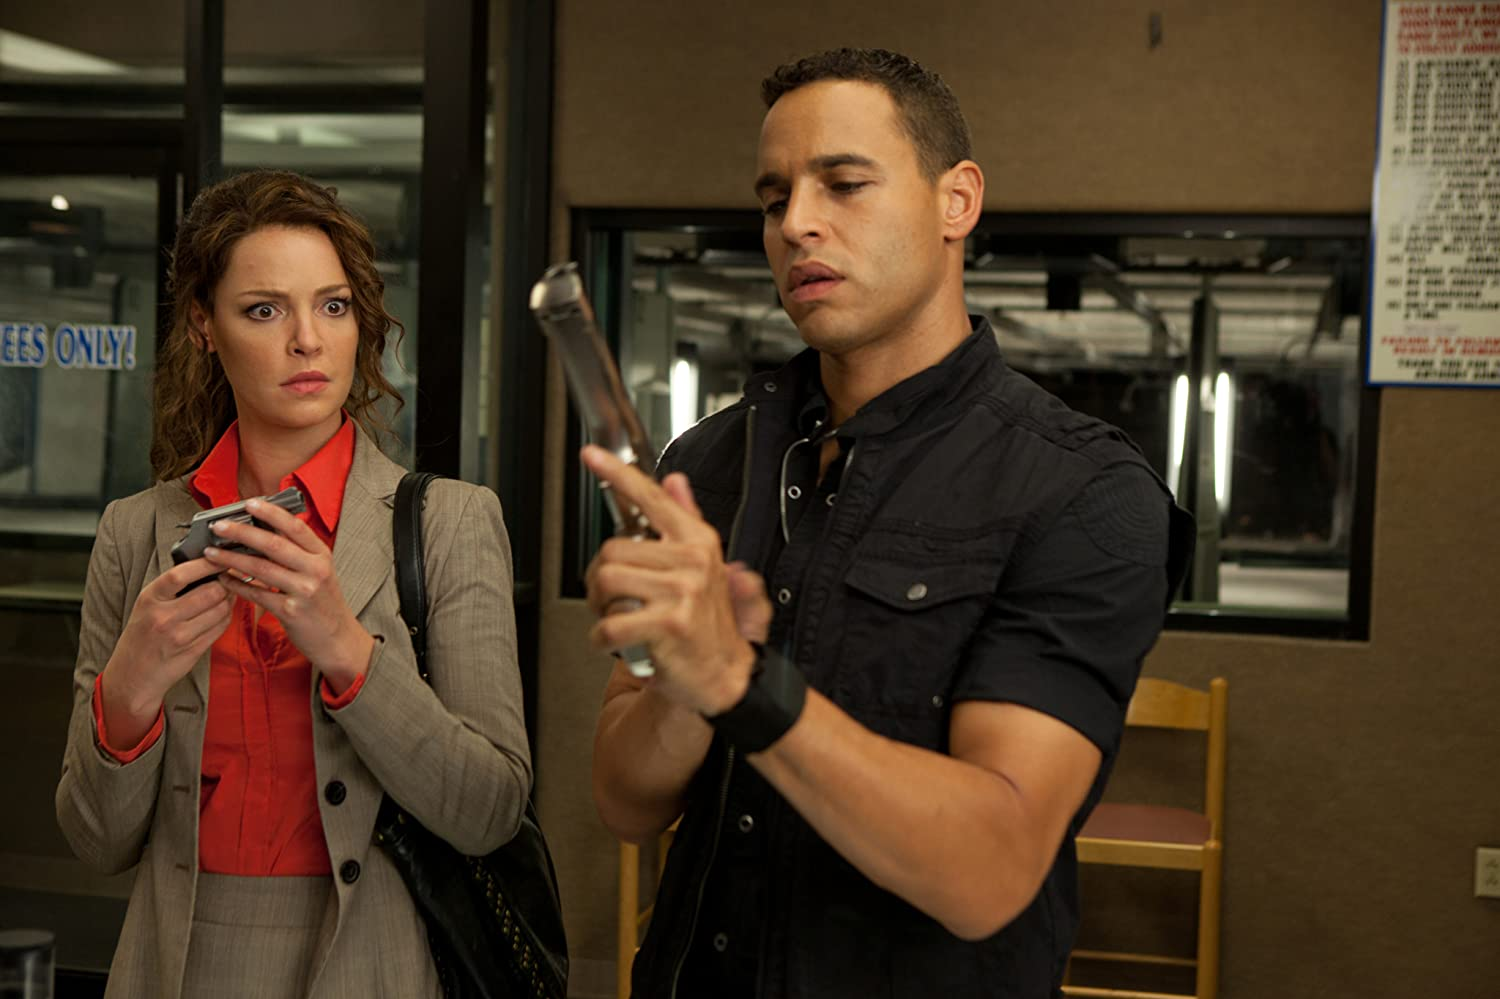 Katherine Heigl and Daniel Sunjata in One for the Money (2012)